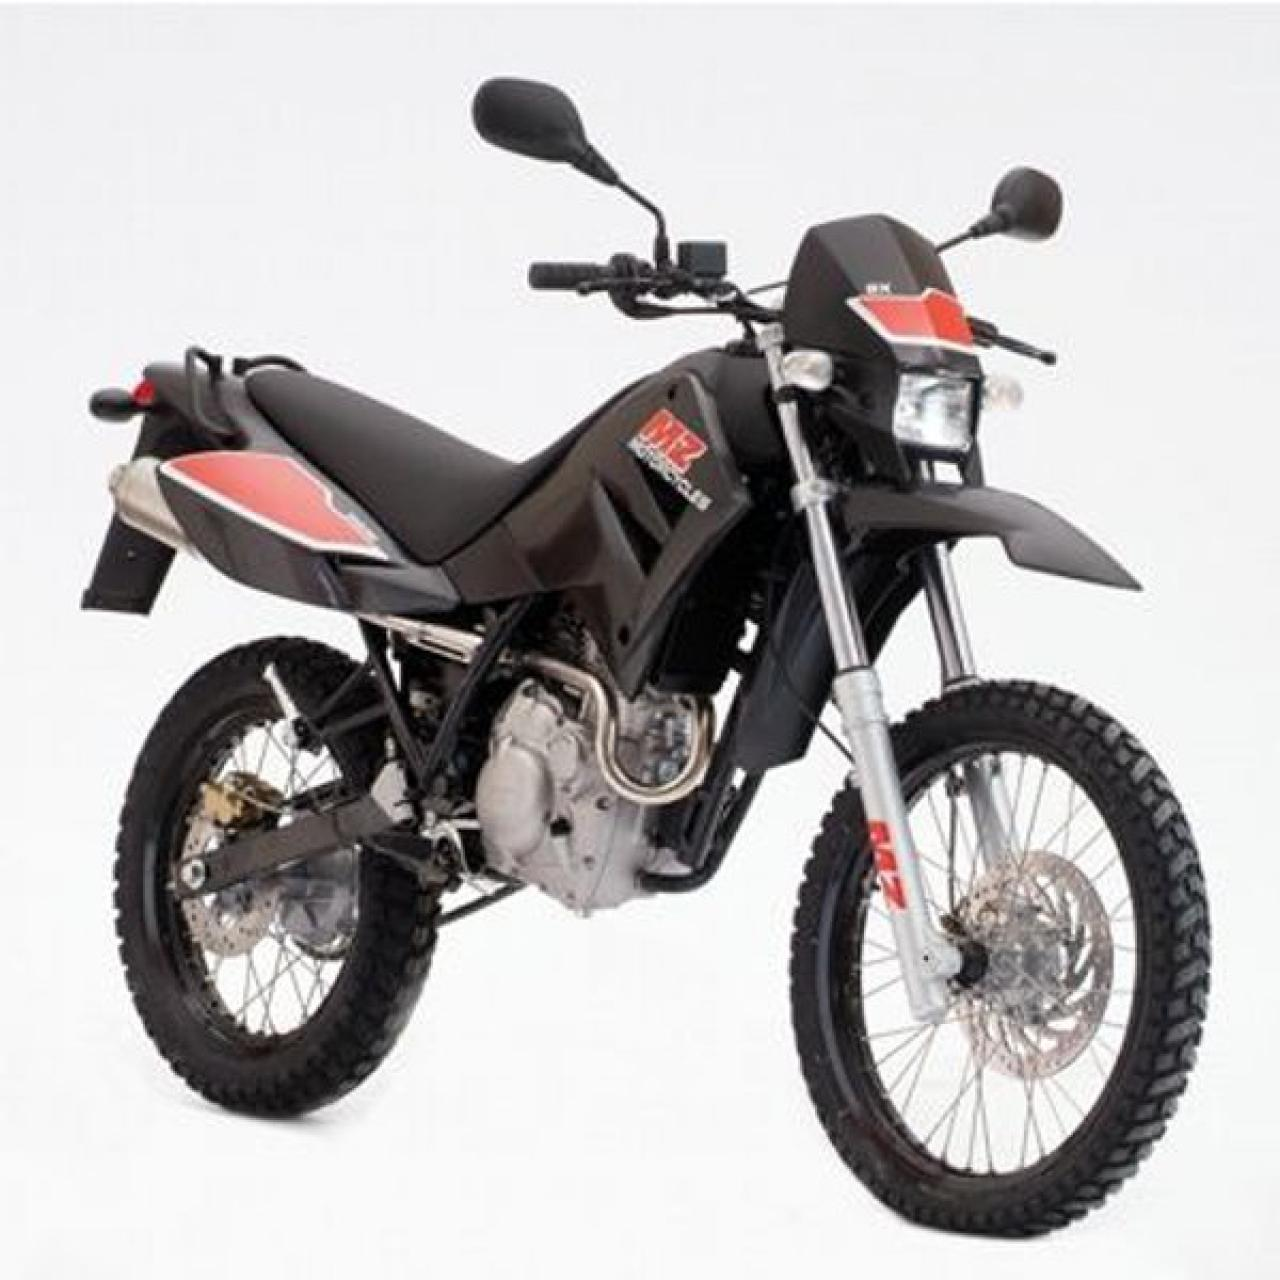 kreidler enduro 125 dd pics specs and list of seriess by. Black Bedroom Furniture Sets. Home Design Ideas